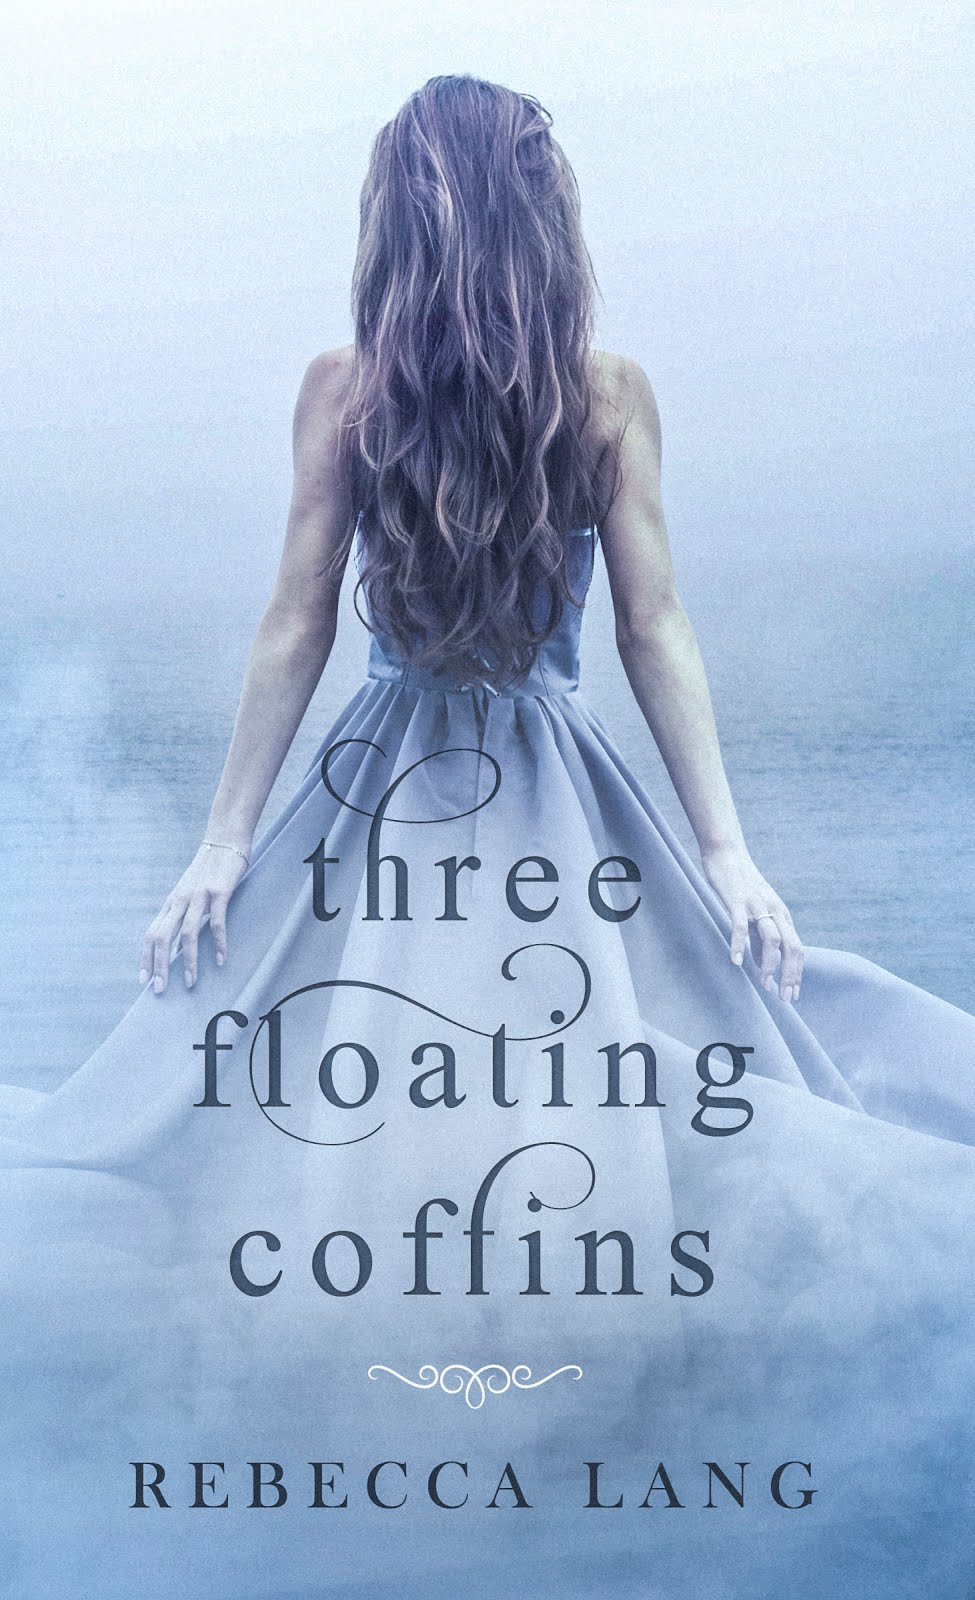 Three Floating Coffins